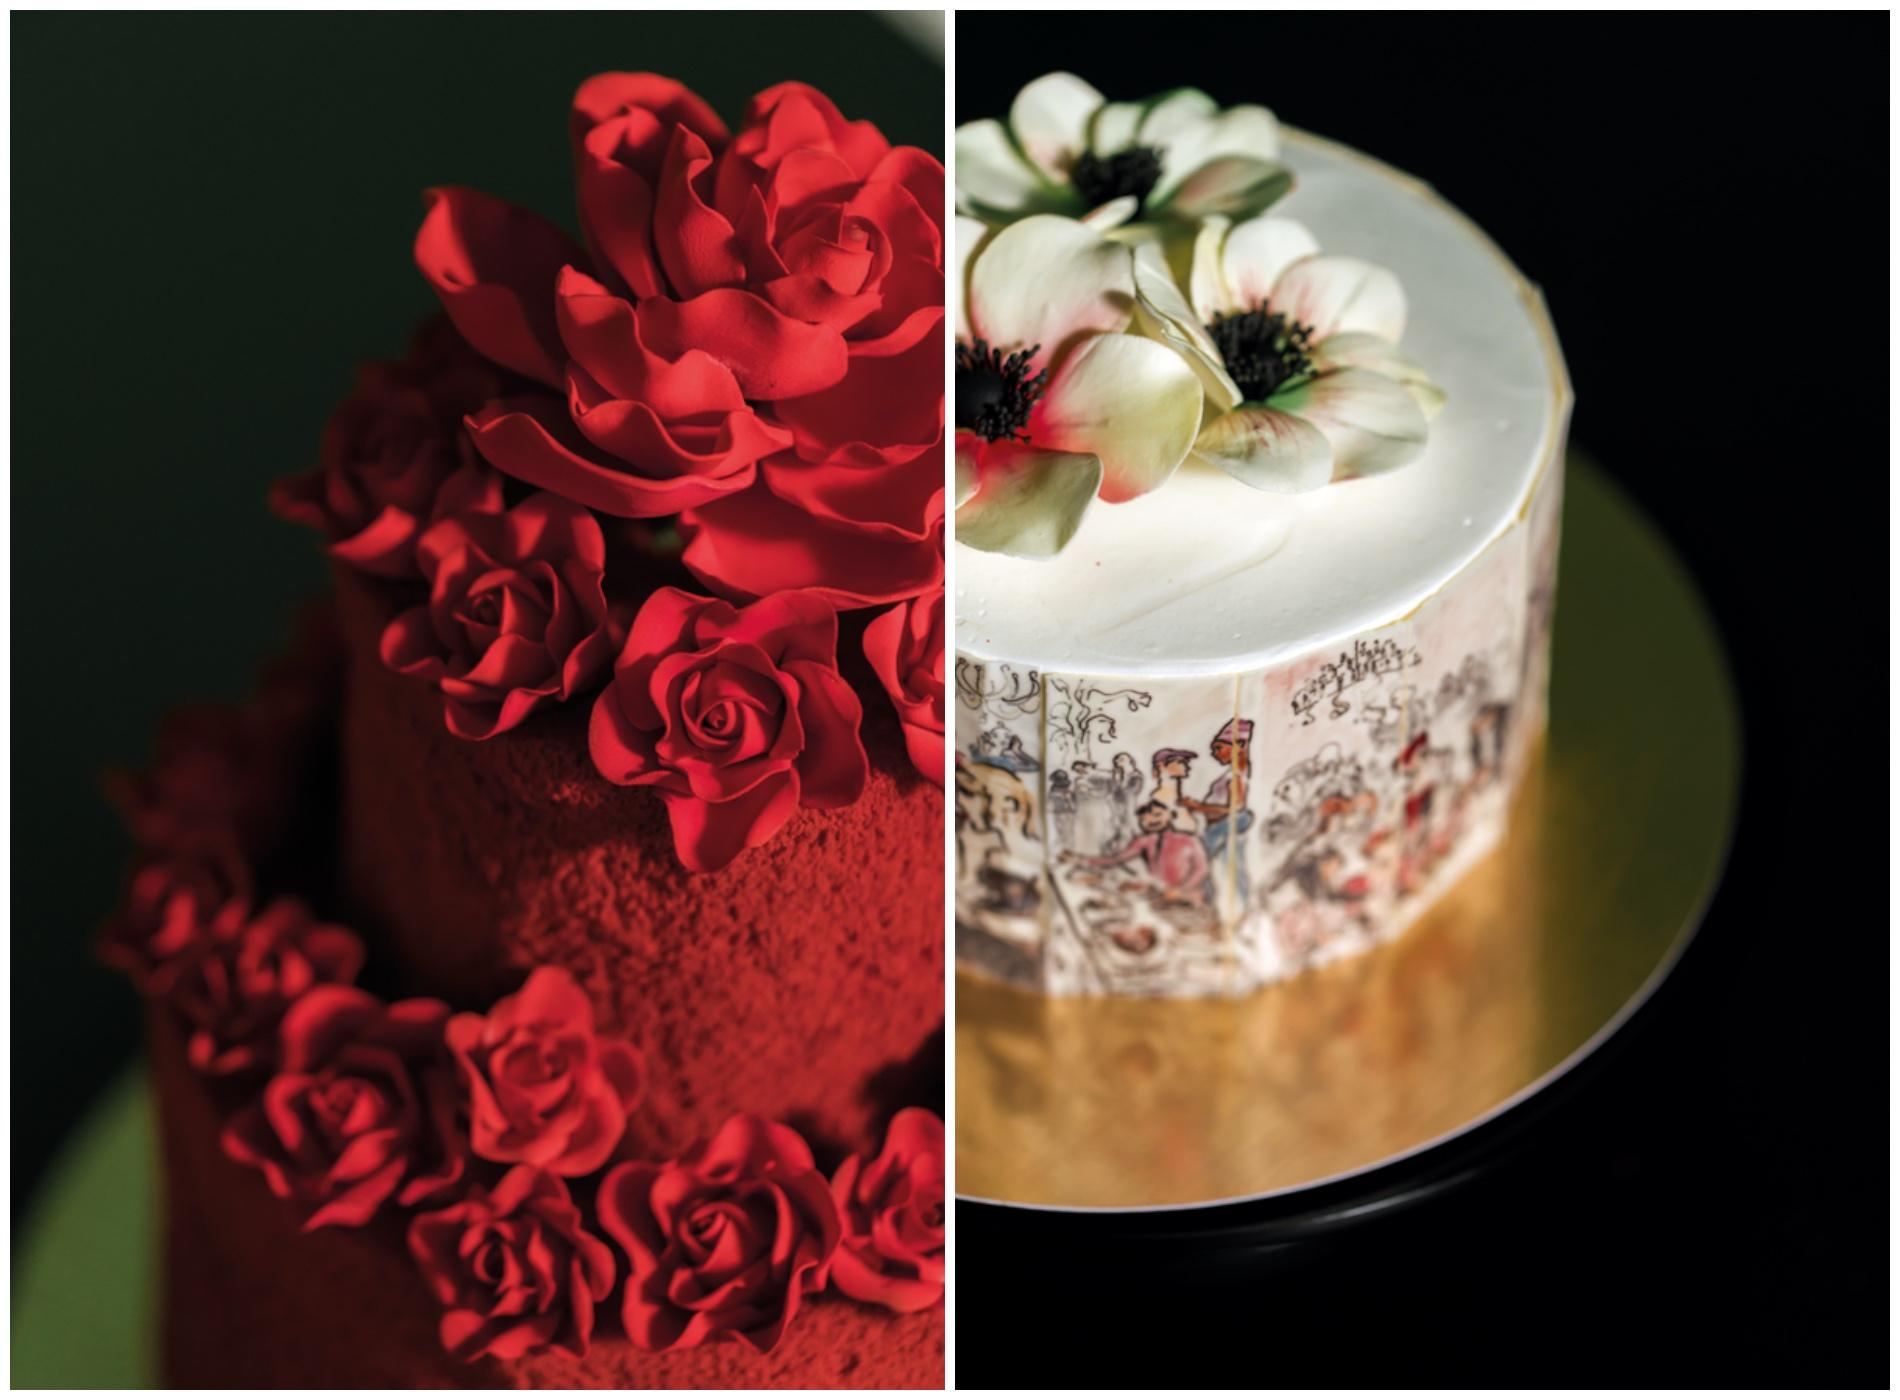 Each of Sevva's bespoke cakes are scrumptiously moist and artfully decadent